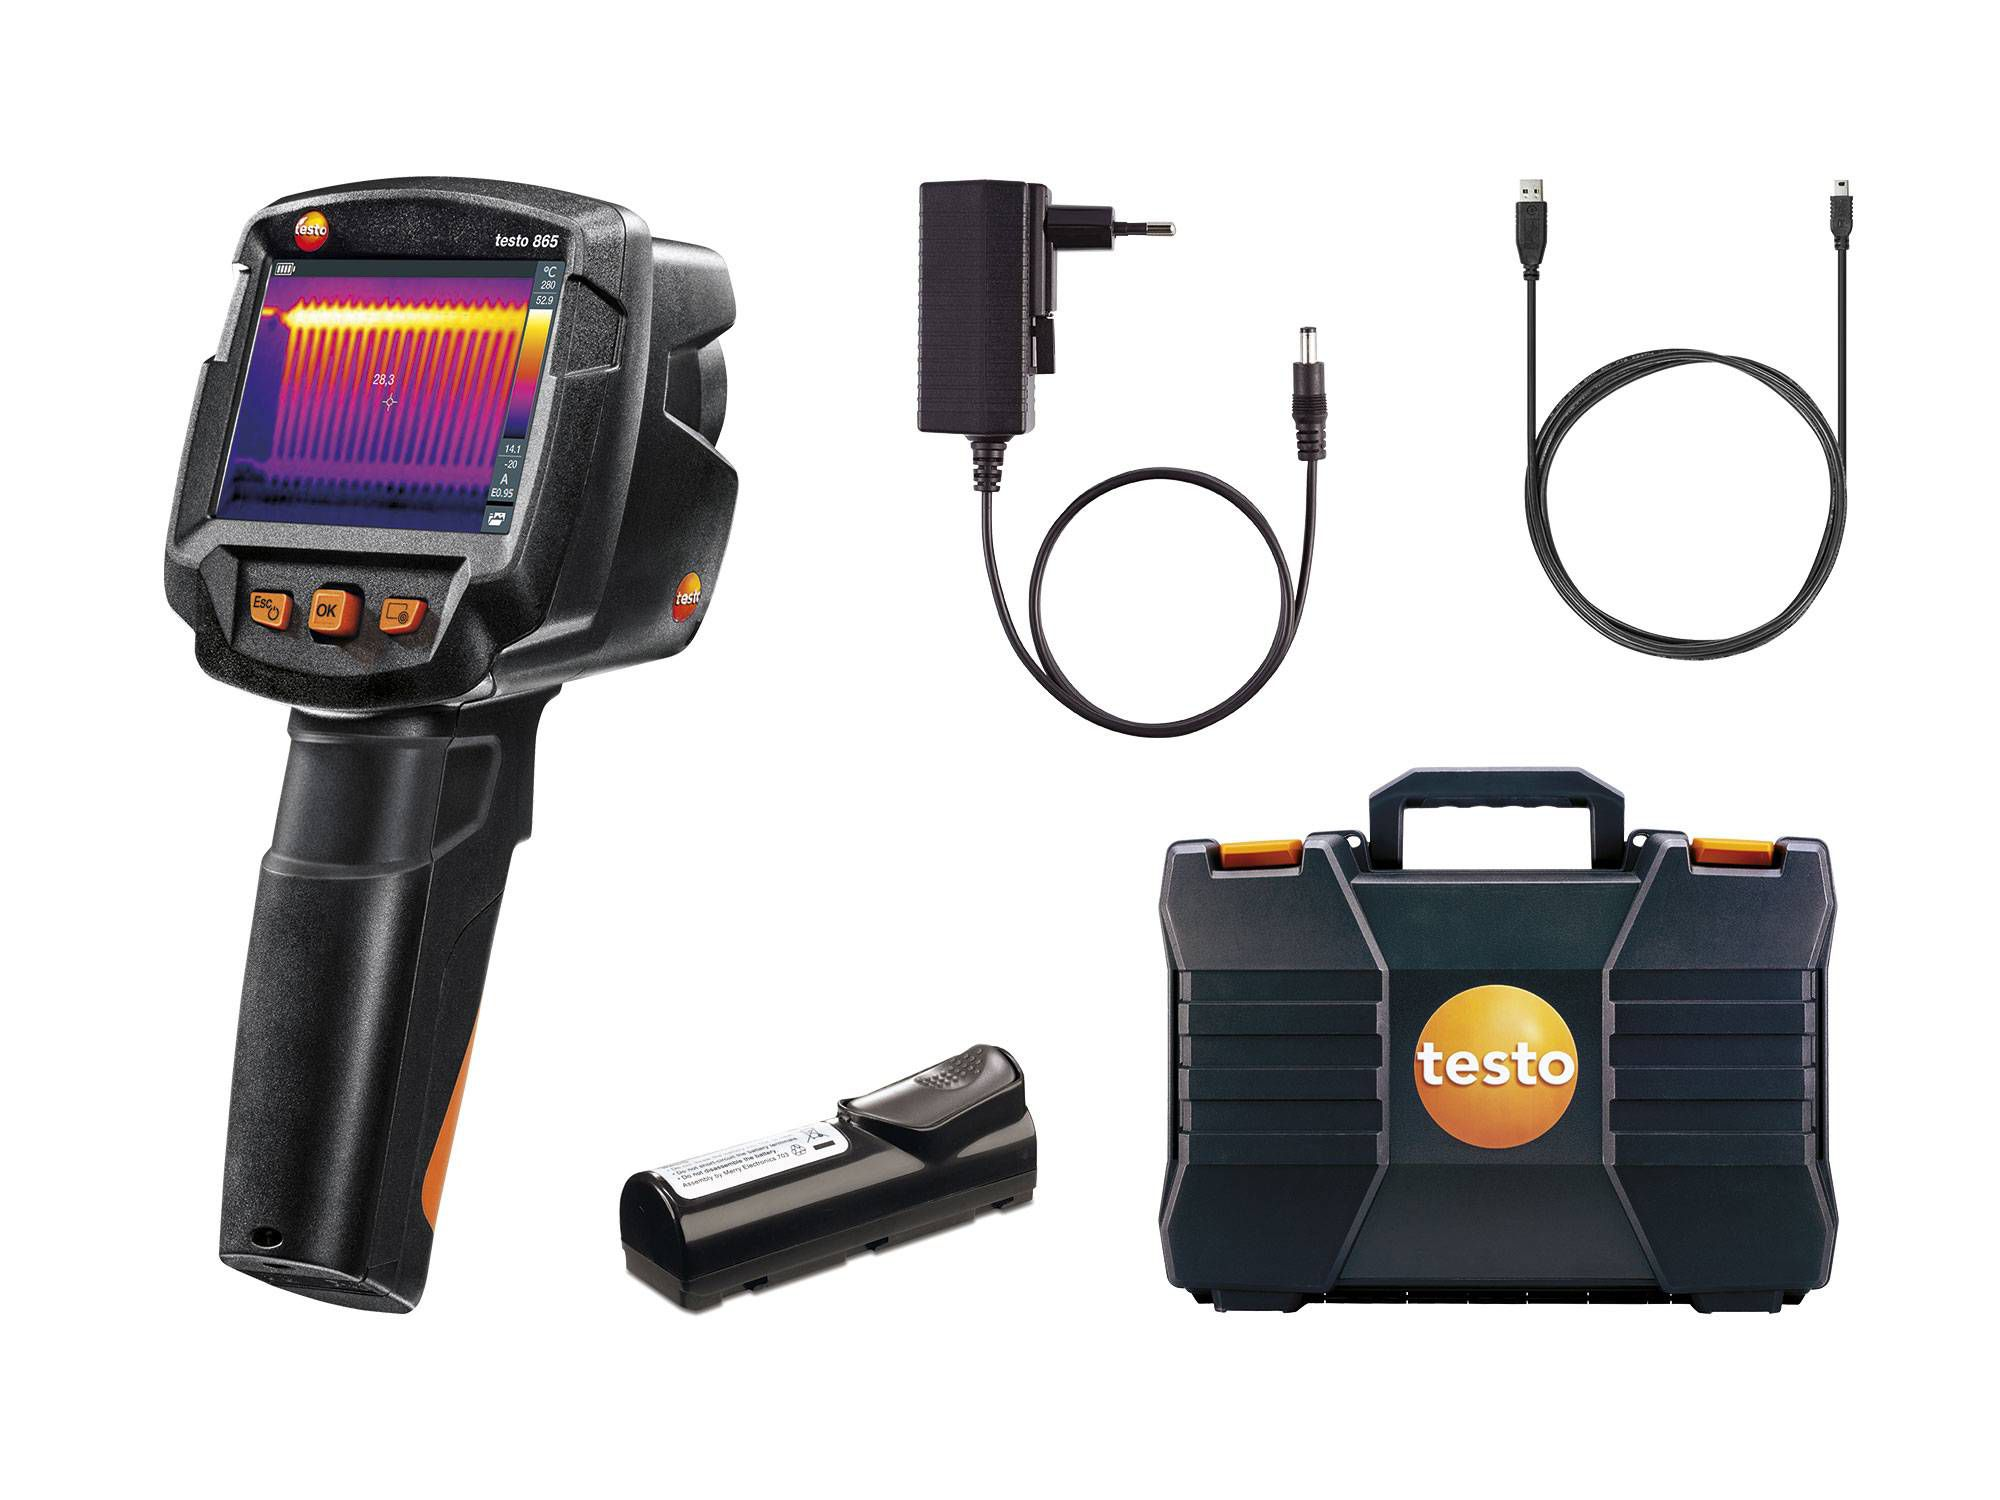 testo 865 - thermal imager - Delivery scope